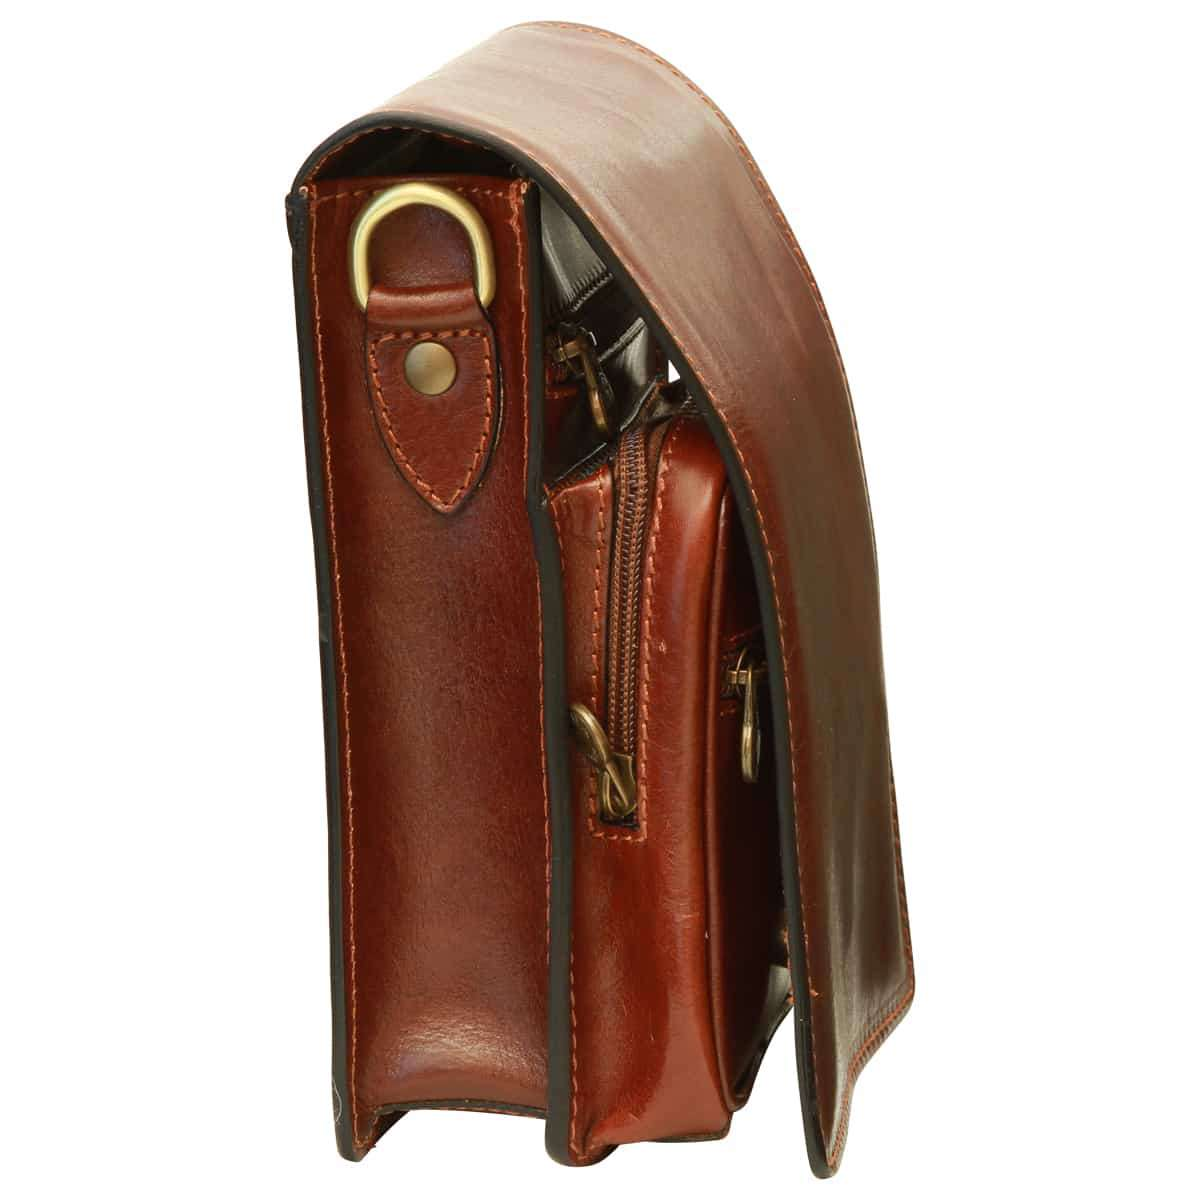 Leather Cross Body Satchel - Brown | 065205MA UK | Old Angler Firenze